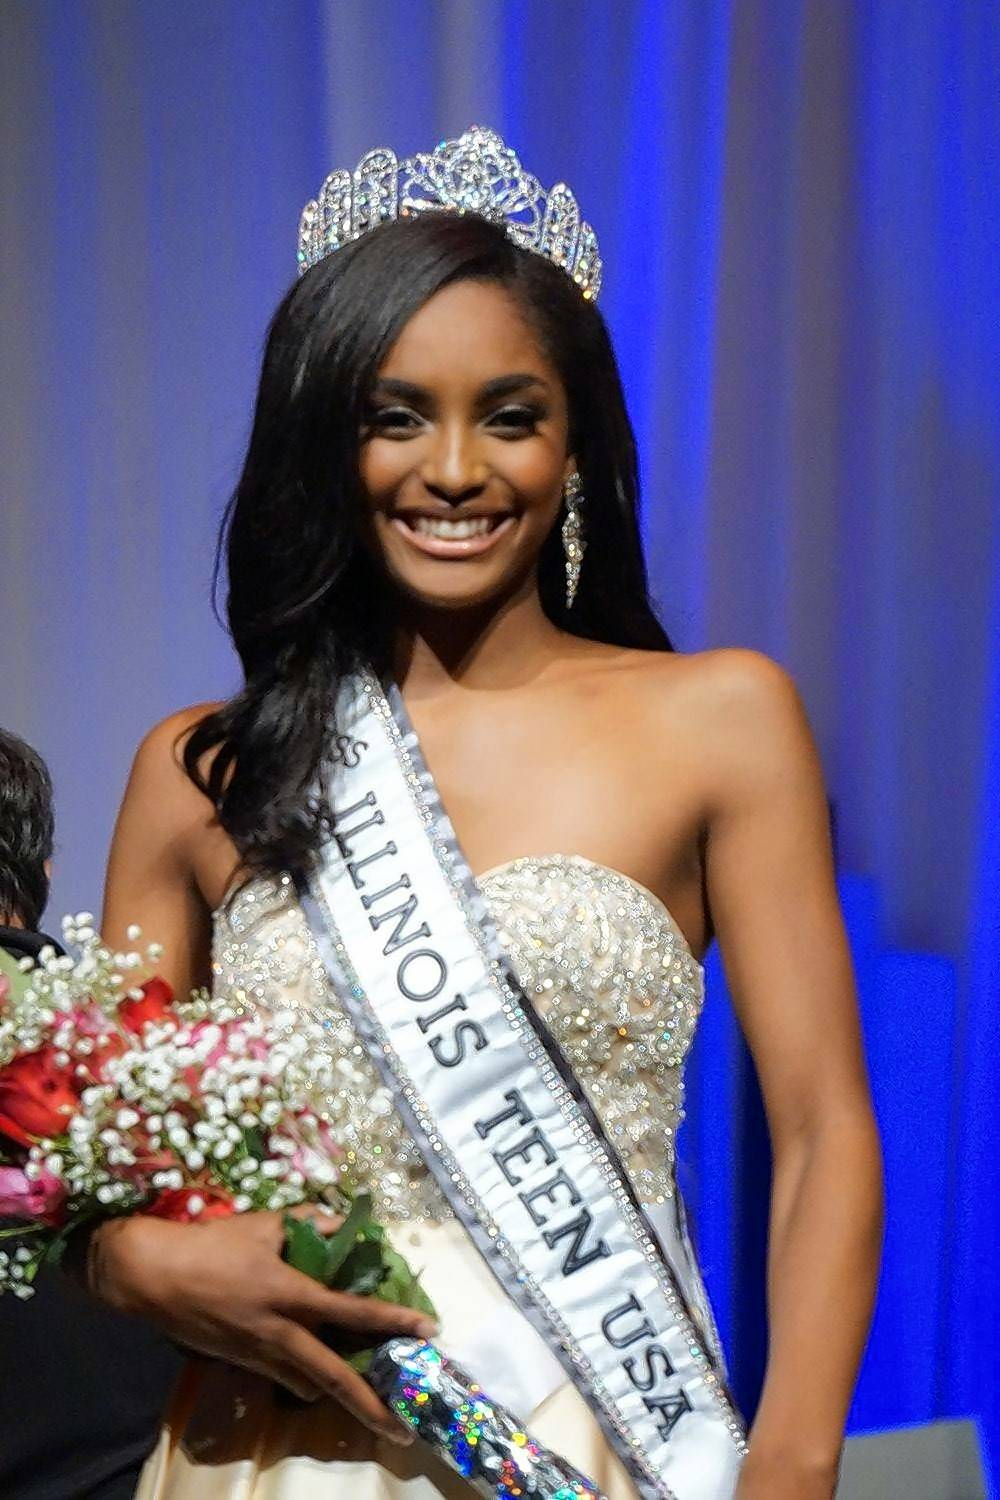 Sydni Dion Bennett, 16, of Algonquin was crowned the winner of the Miss Illinois Teen pageant last month.